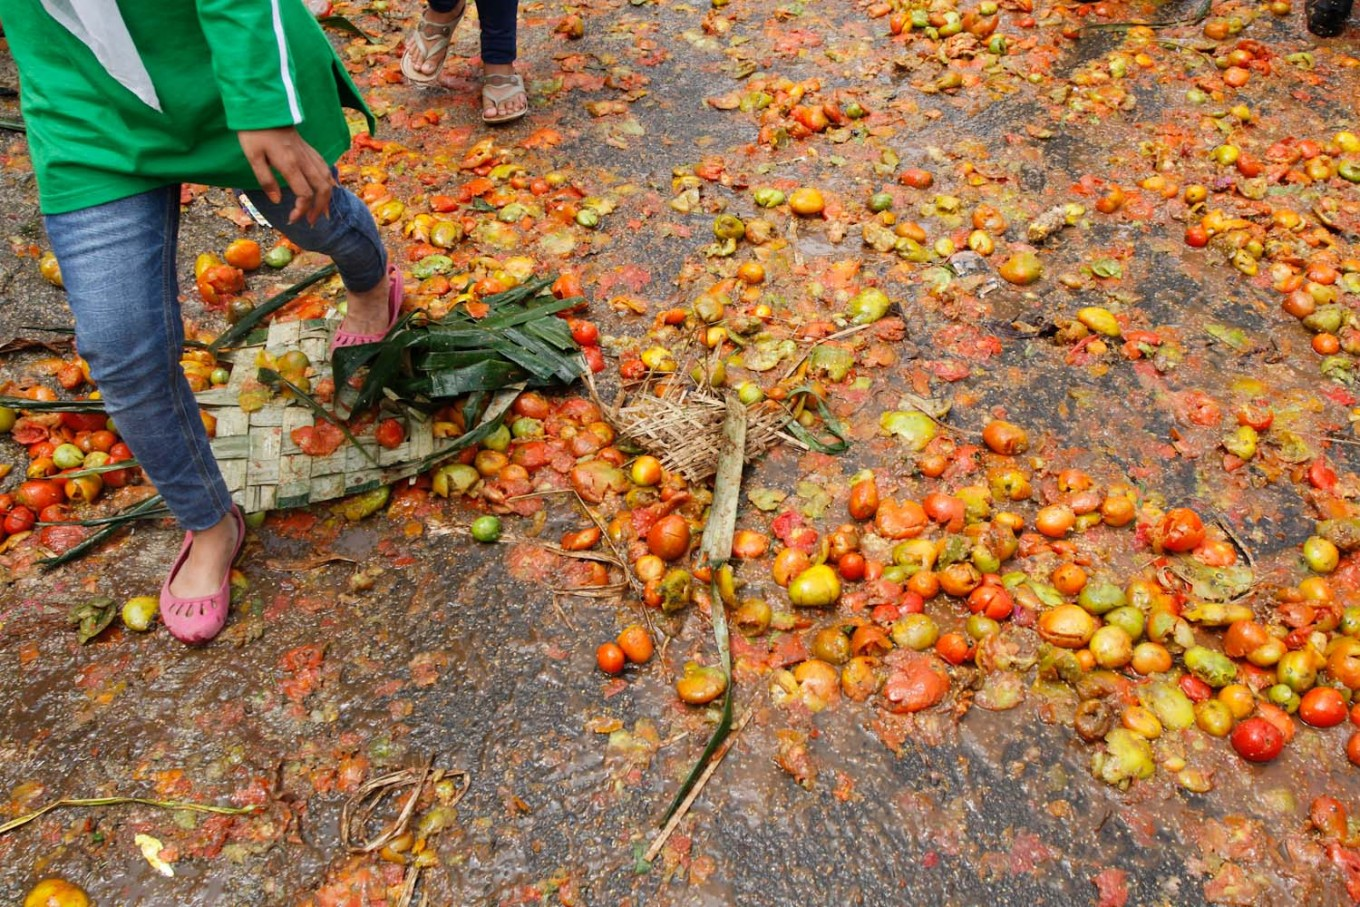 The streets of Cikareumbi Kampung were covered in tomatoes after the fight ended. JP/Arya Dipa